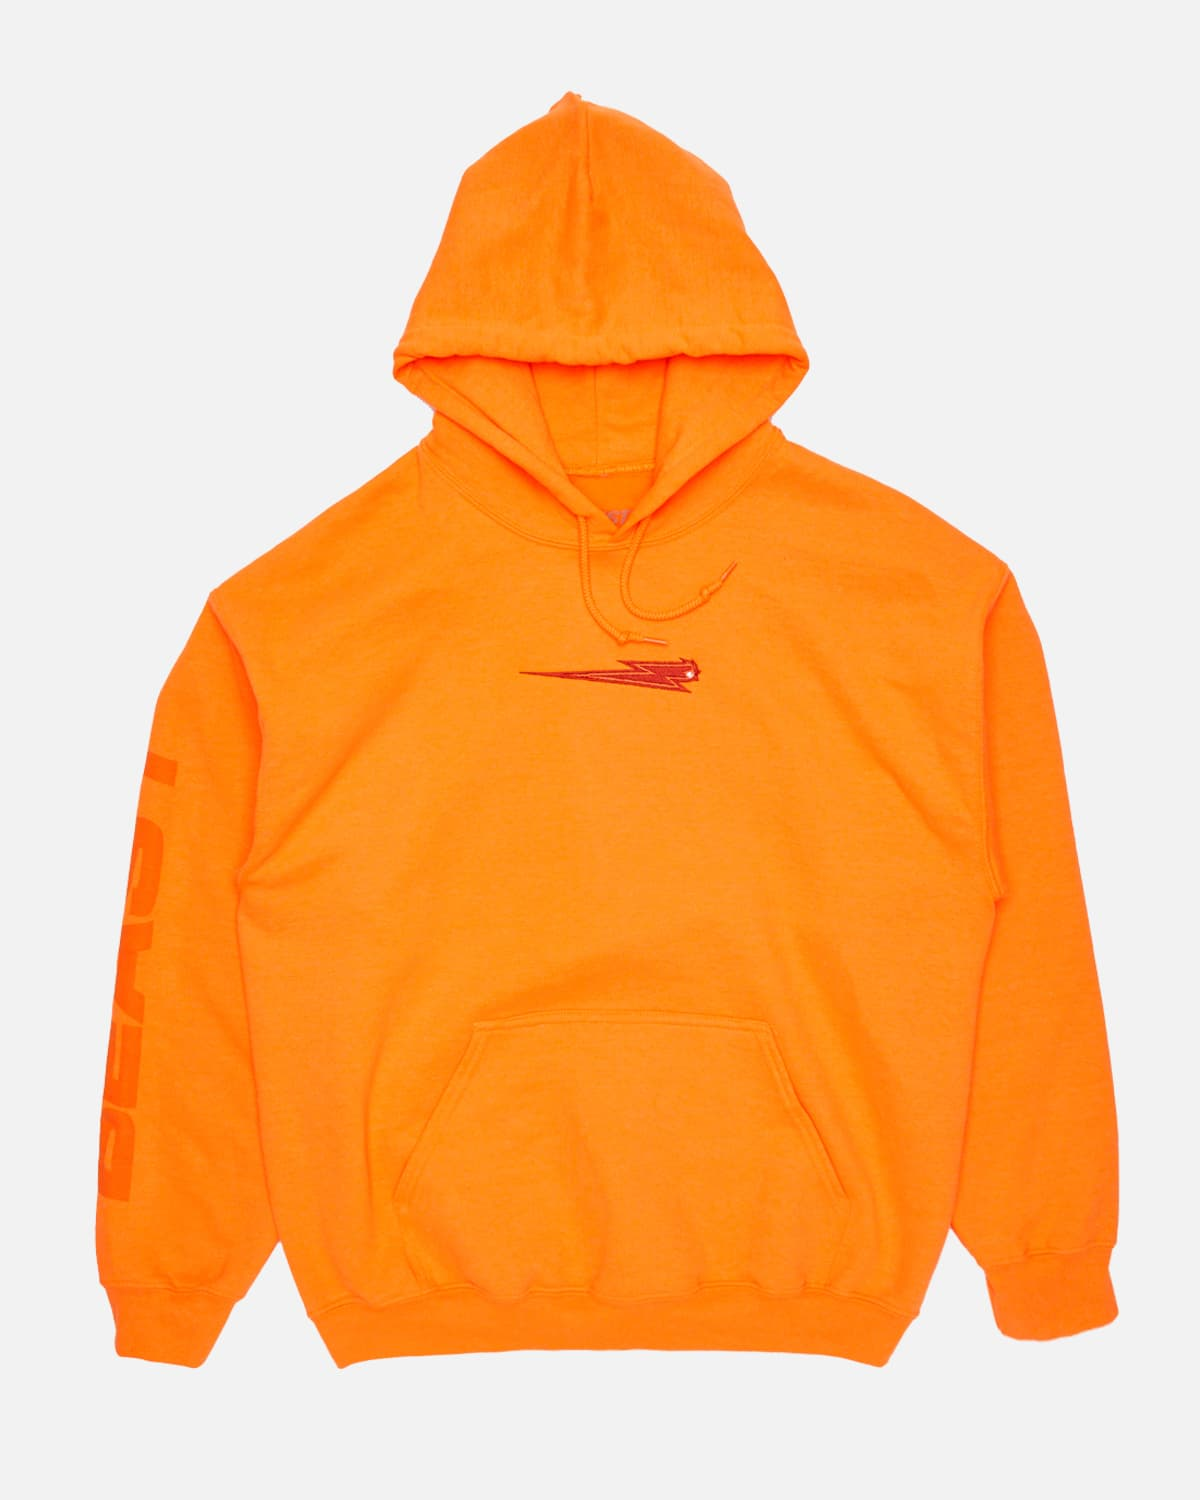 'Beast Bolt' Embroidered Pull Over Hoodie - Orange